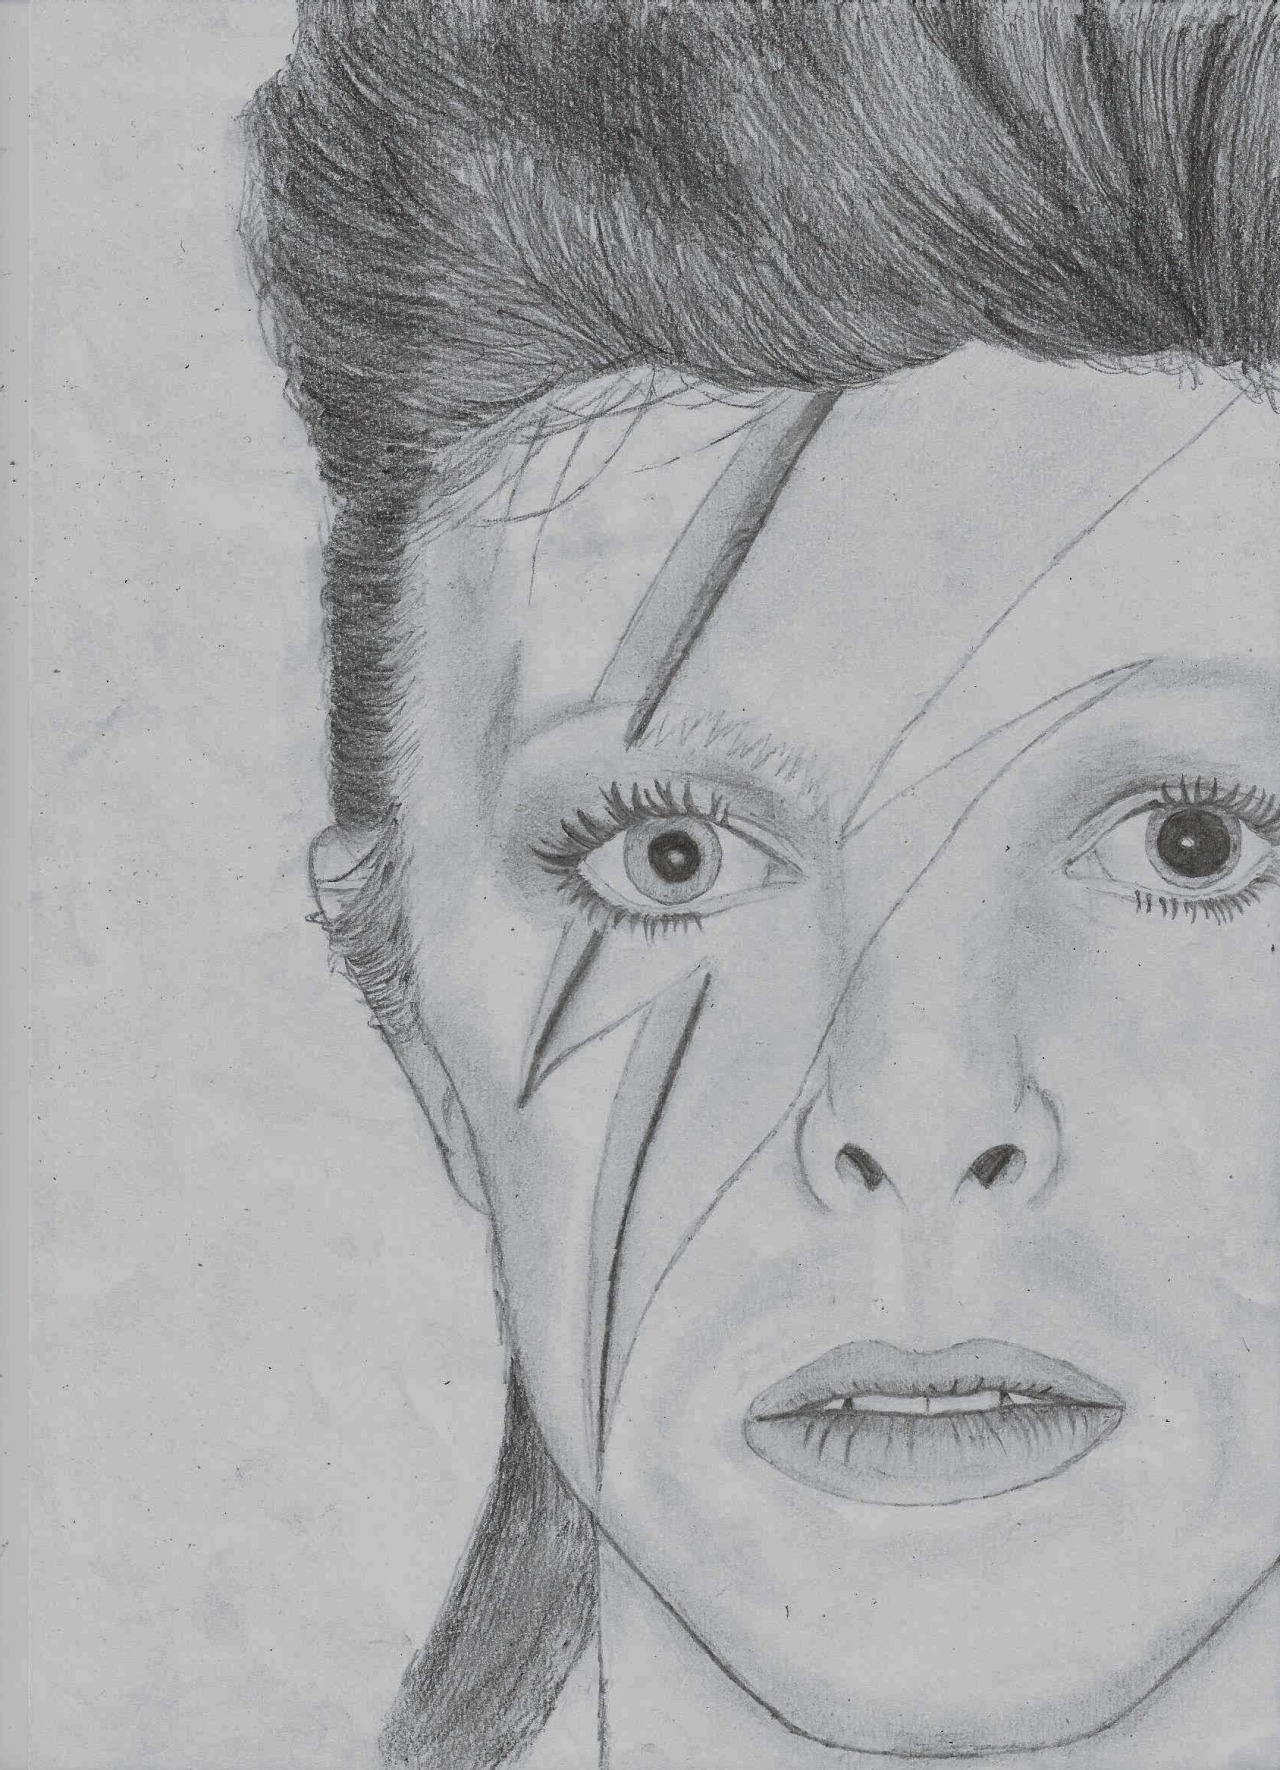 a-n-x-i-o-us:  i drawed another david bowie today because i'm pretty obsessed and i have no life